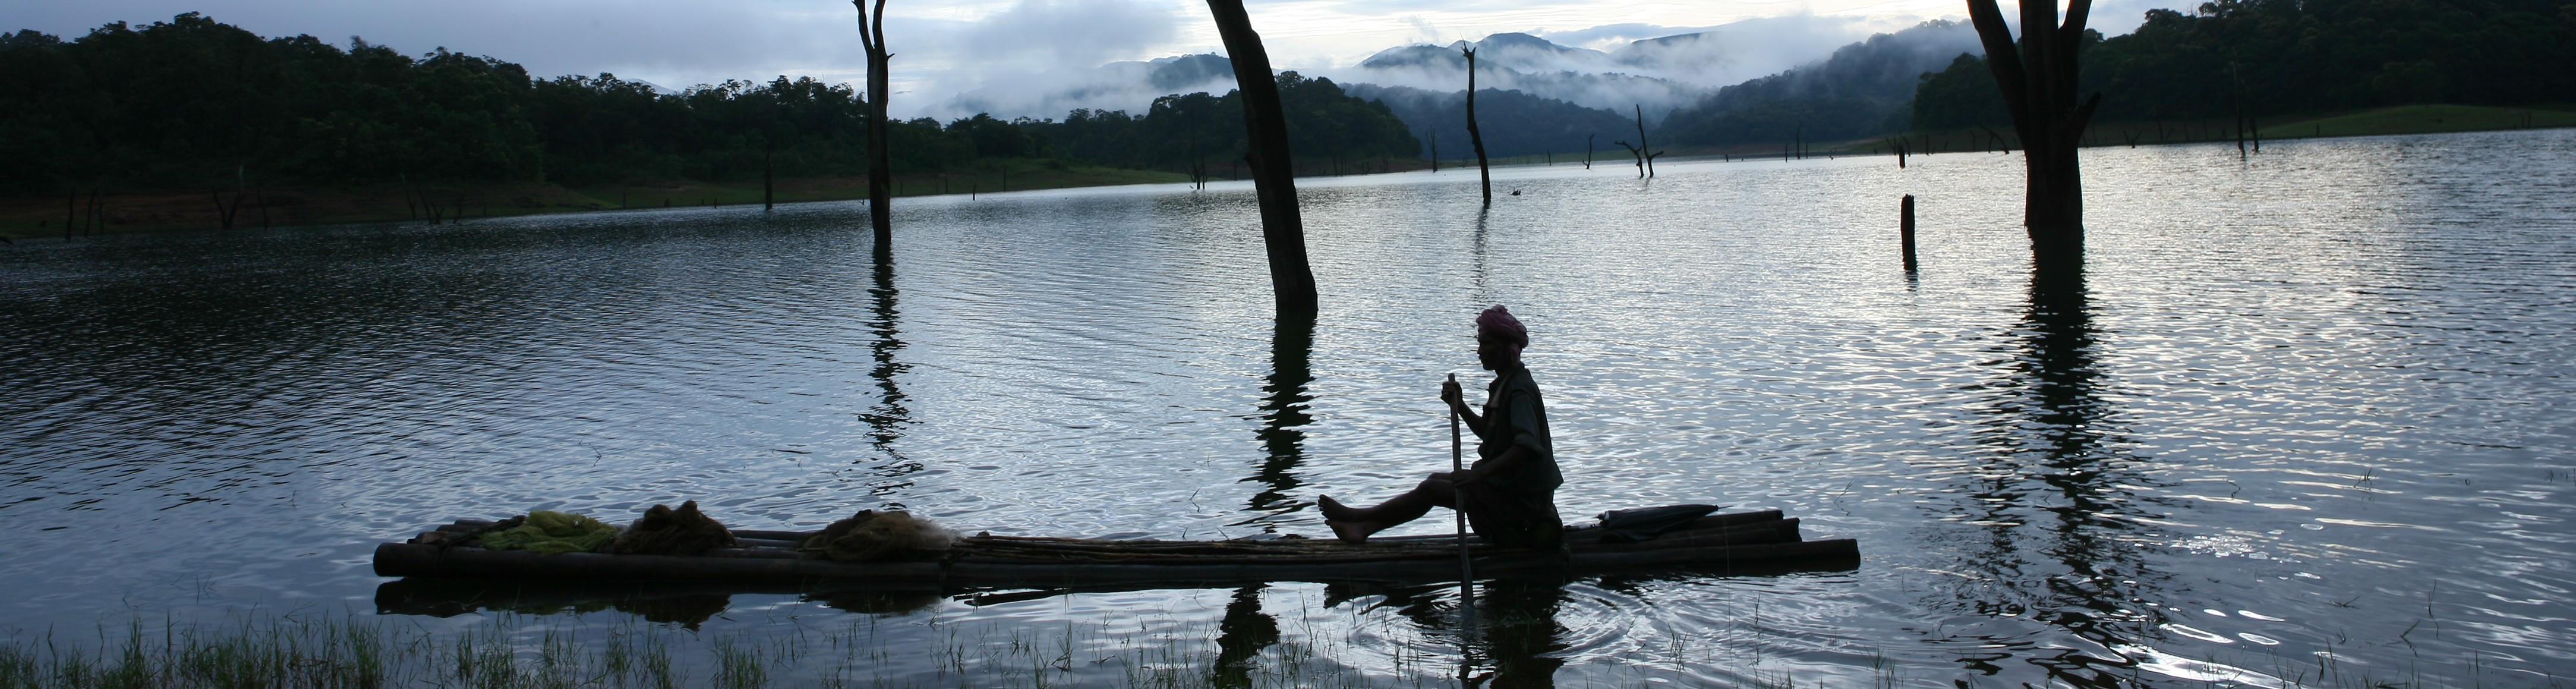 Local-fisherman-in-the-Periyar-Tiger-Reserve-e1380376223785